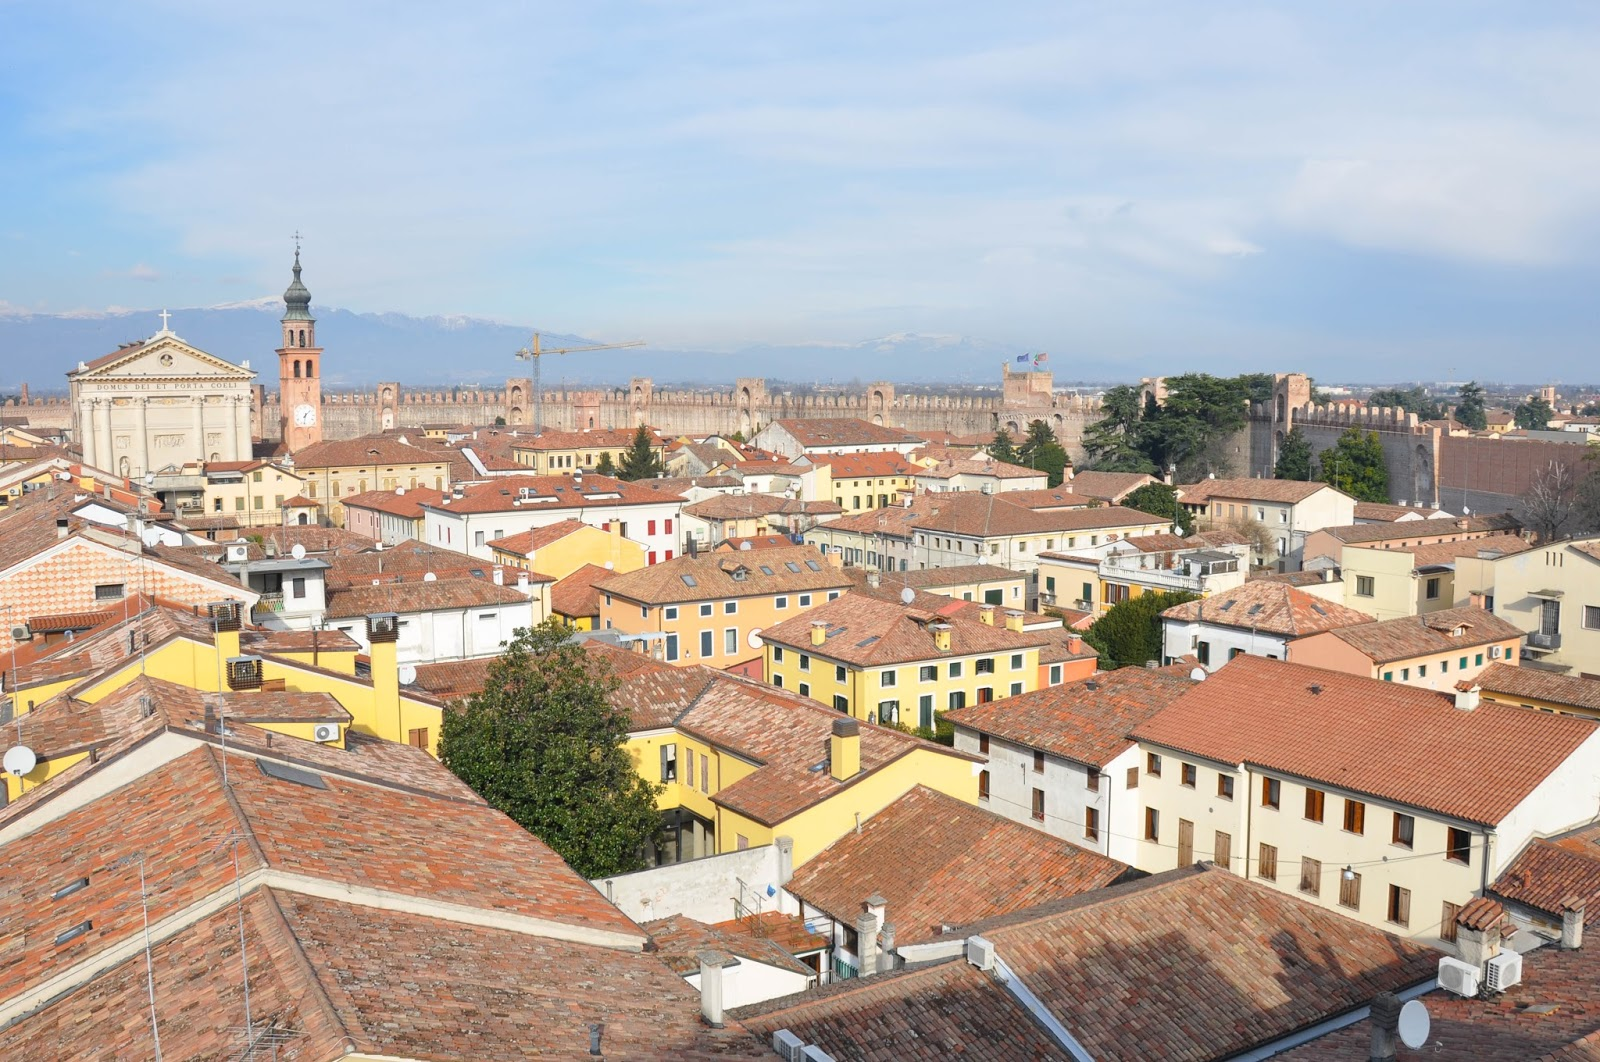 A panoramic view of the medieval town of Cittadella in Veneto, Italy and its wall